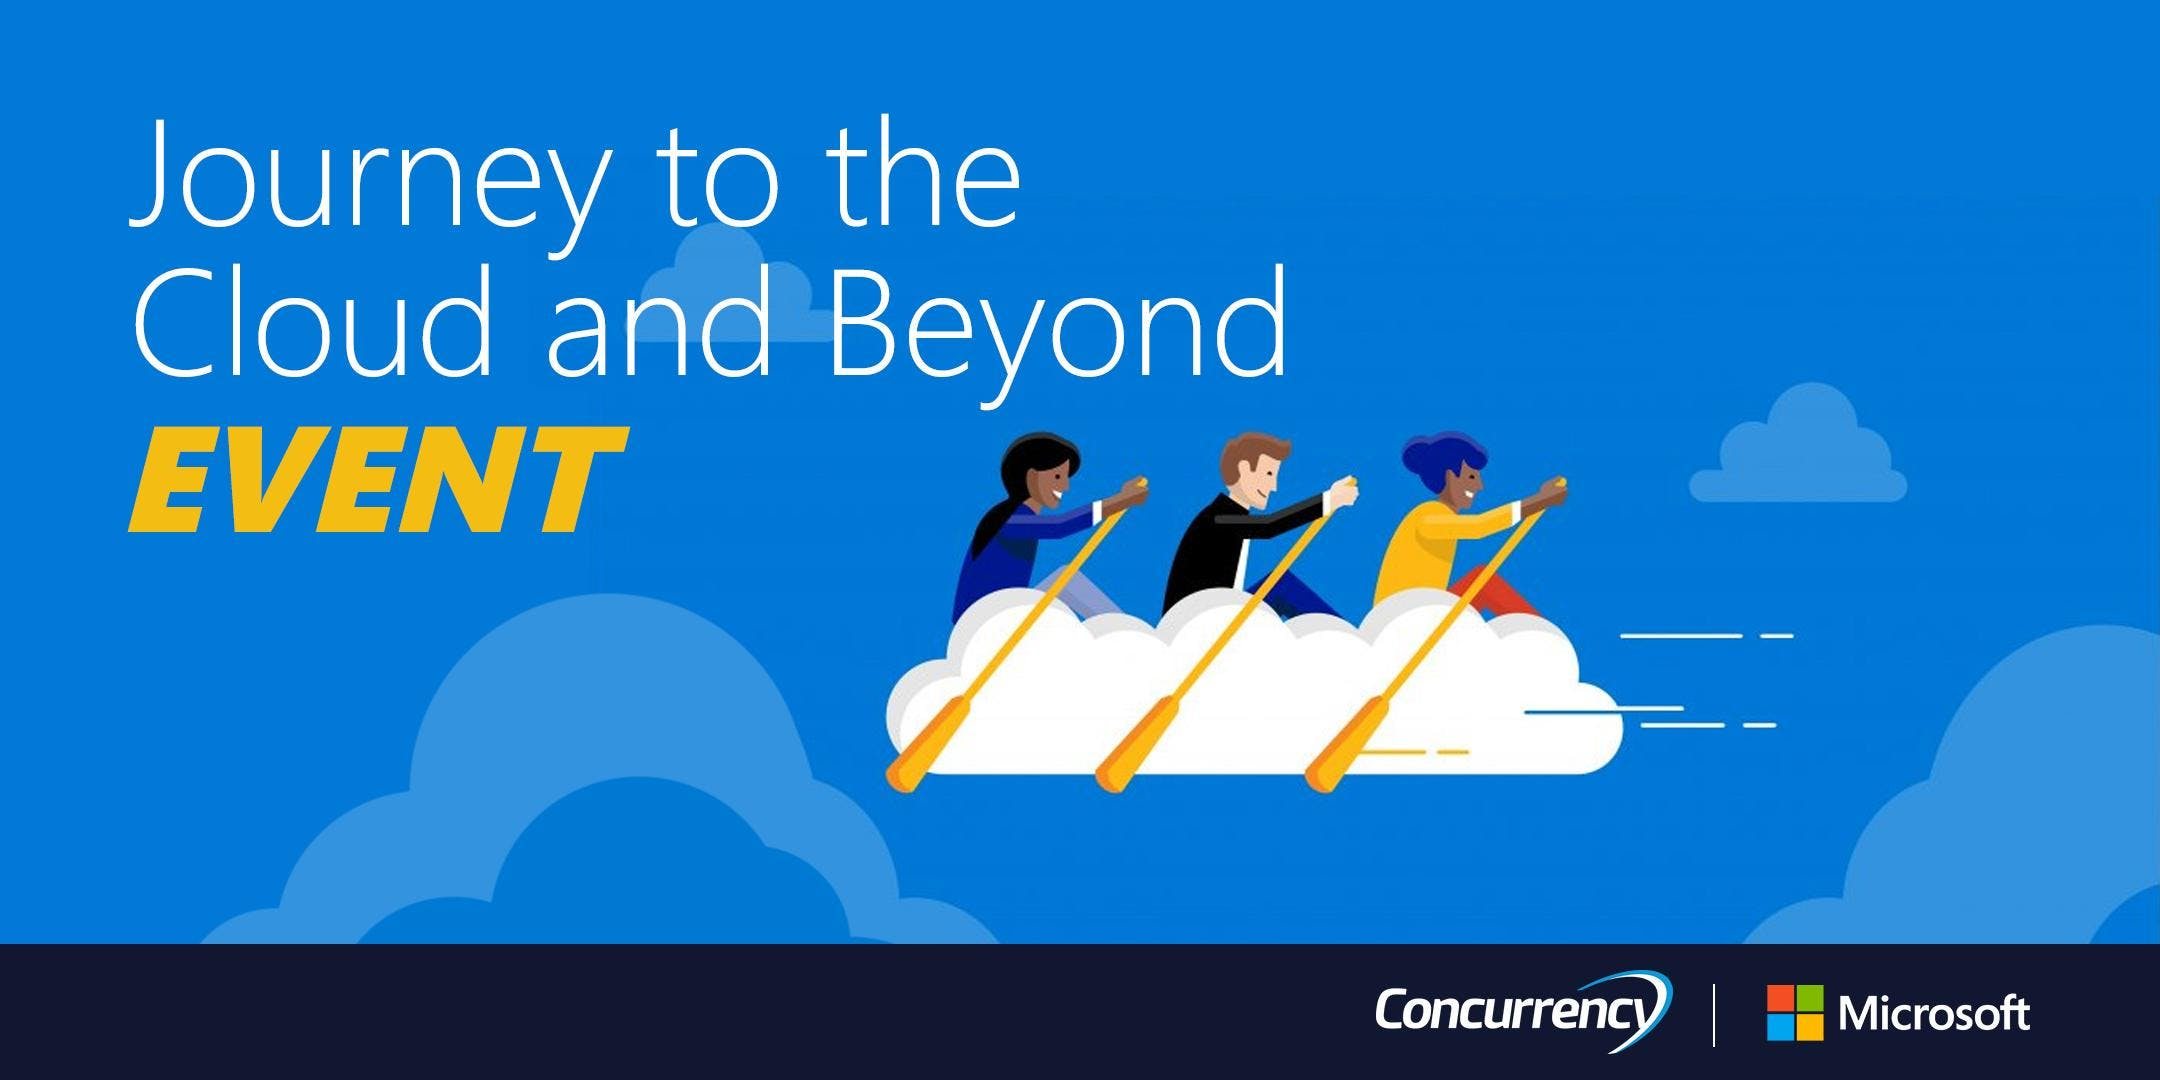 Journey to the Cloud and Beyond